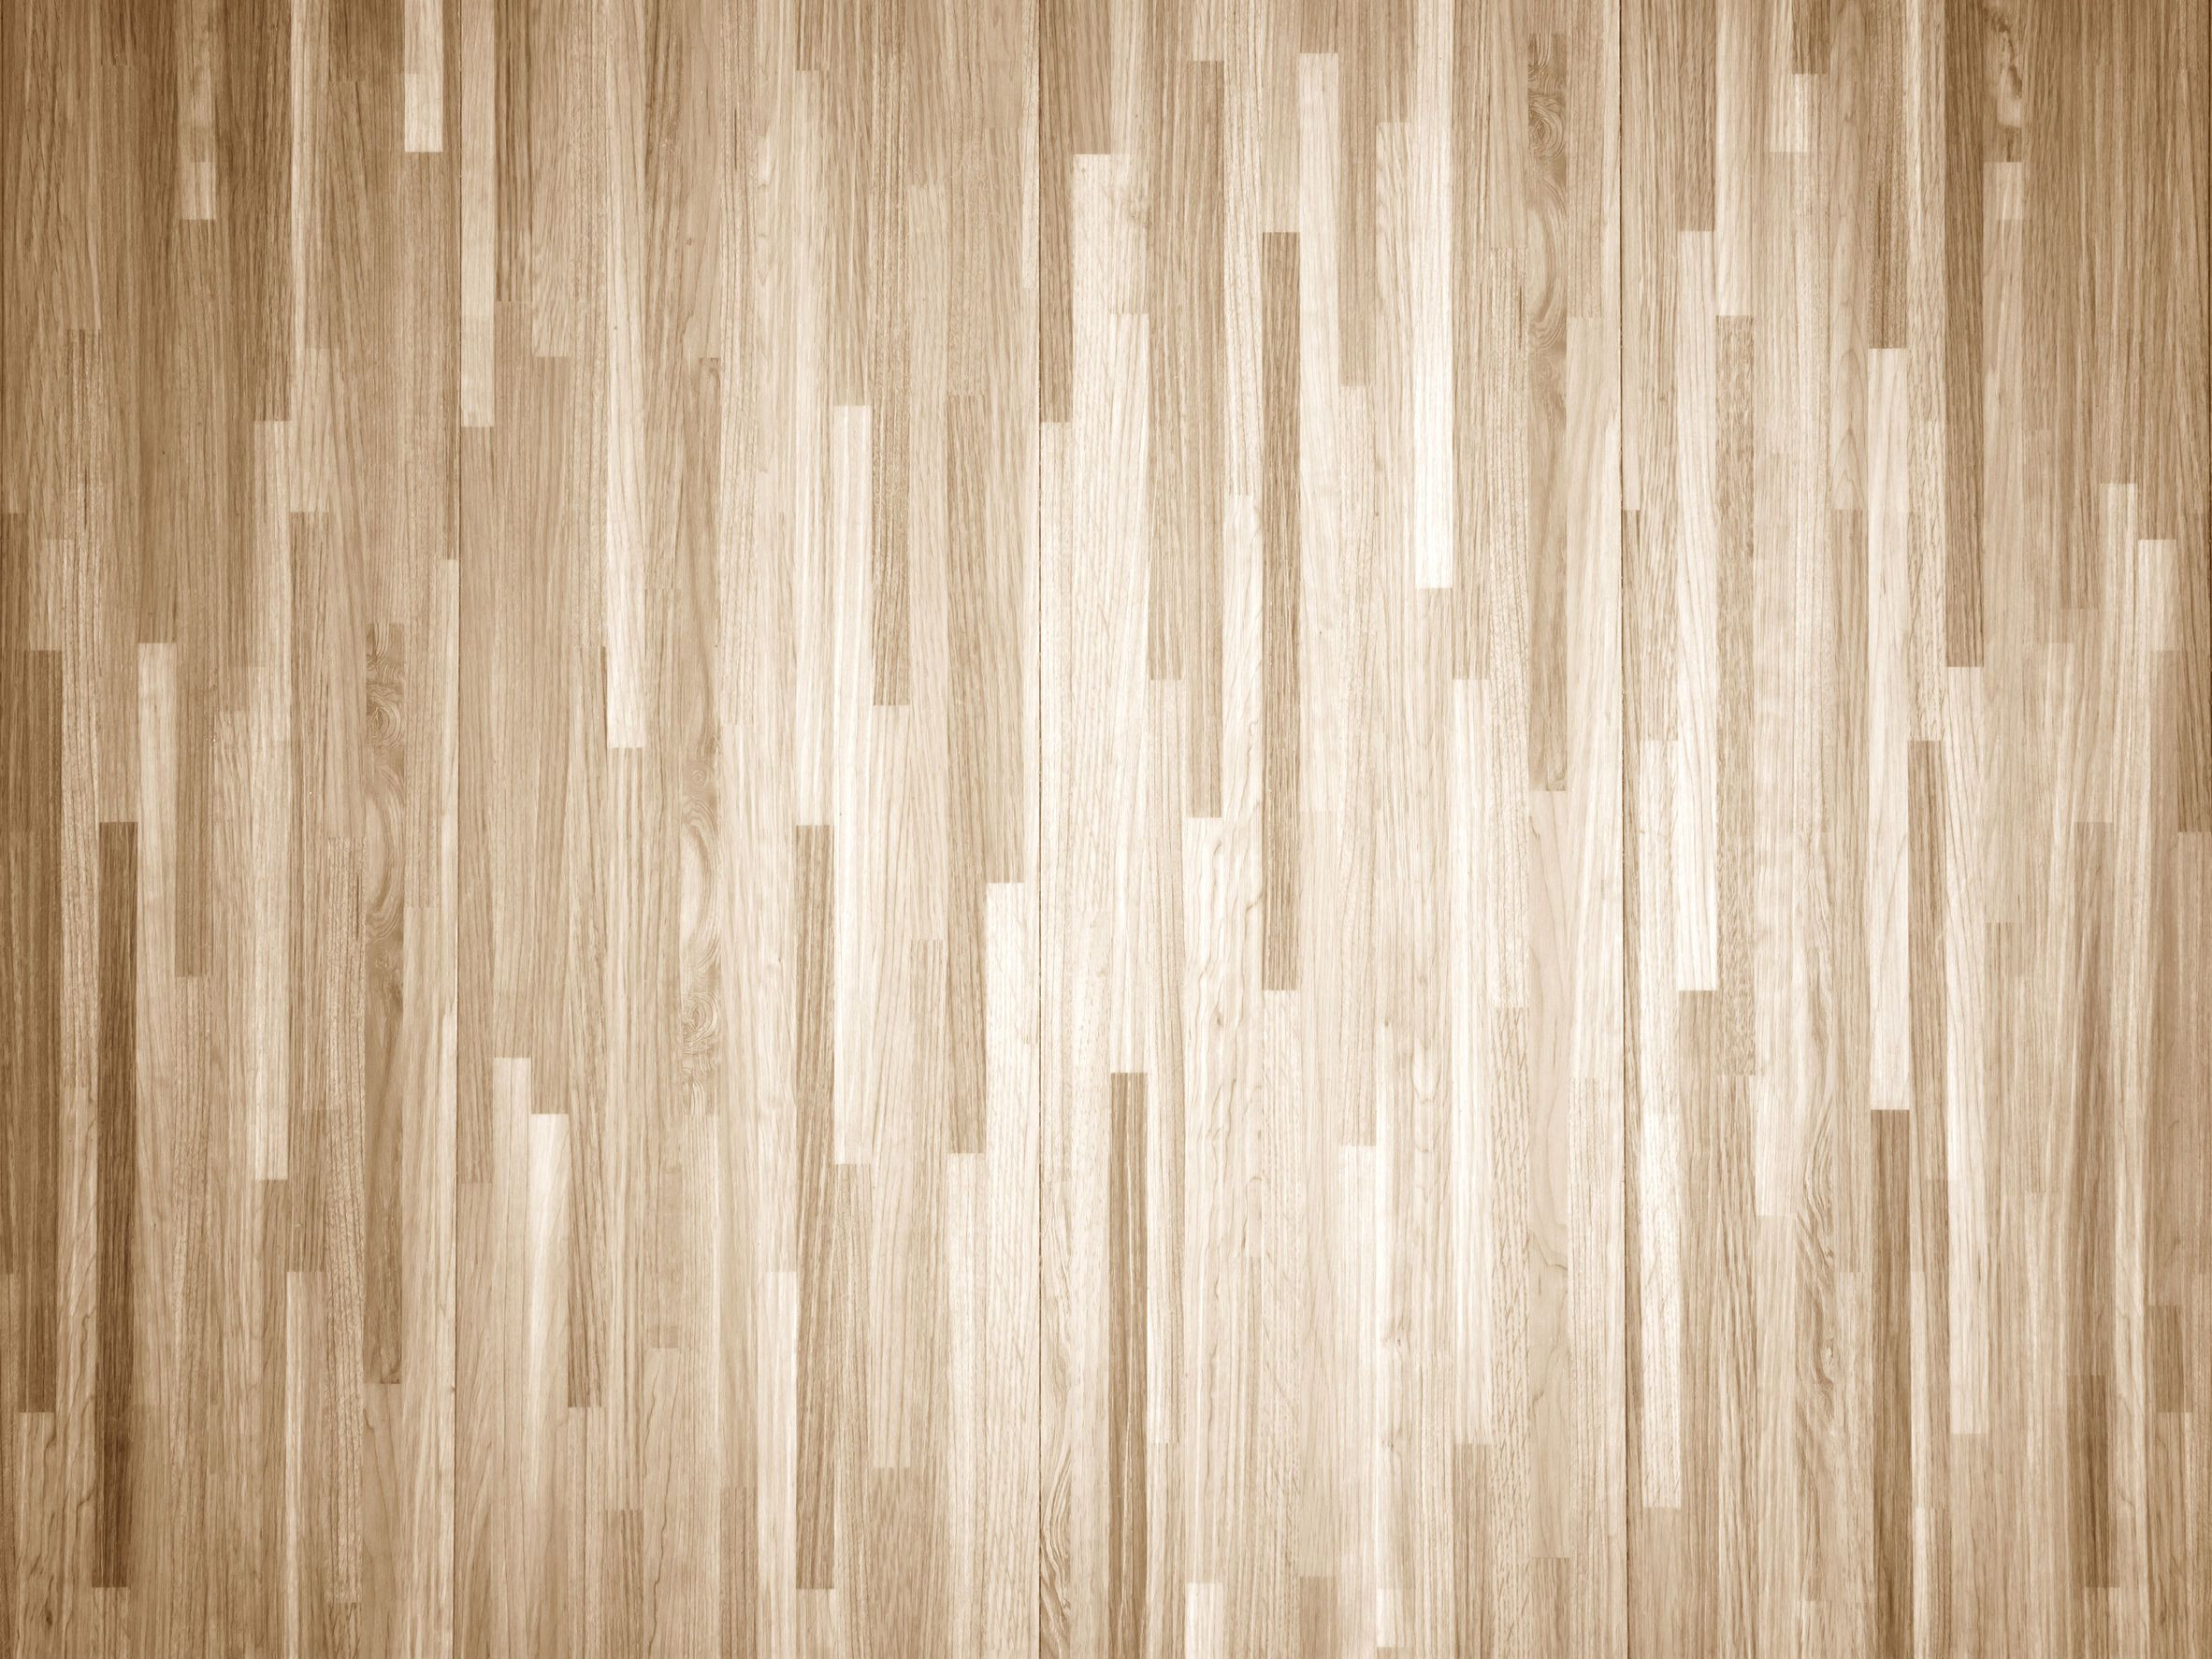 best cleaner for hand scraped hardwood floors of how to chemically strip wood floors woodfloordoctor com for you